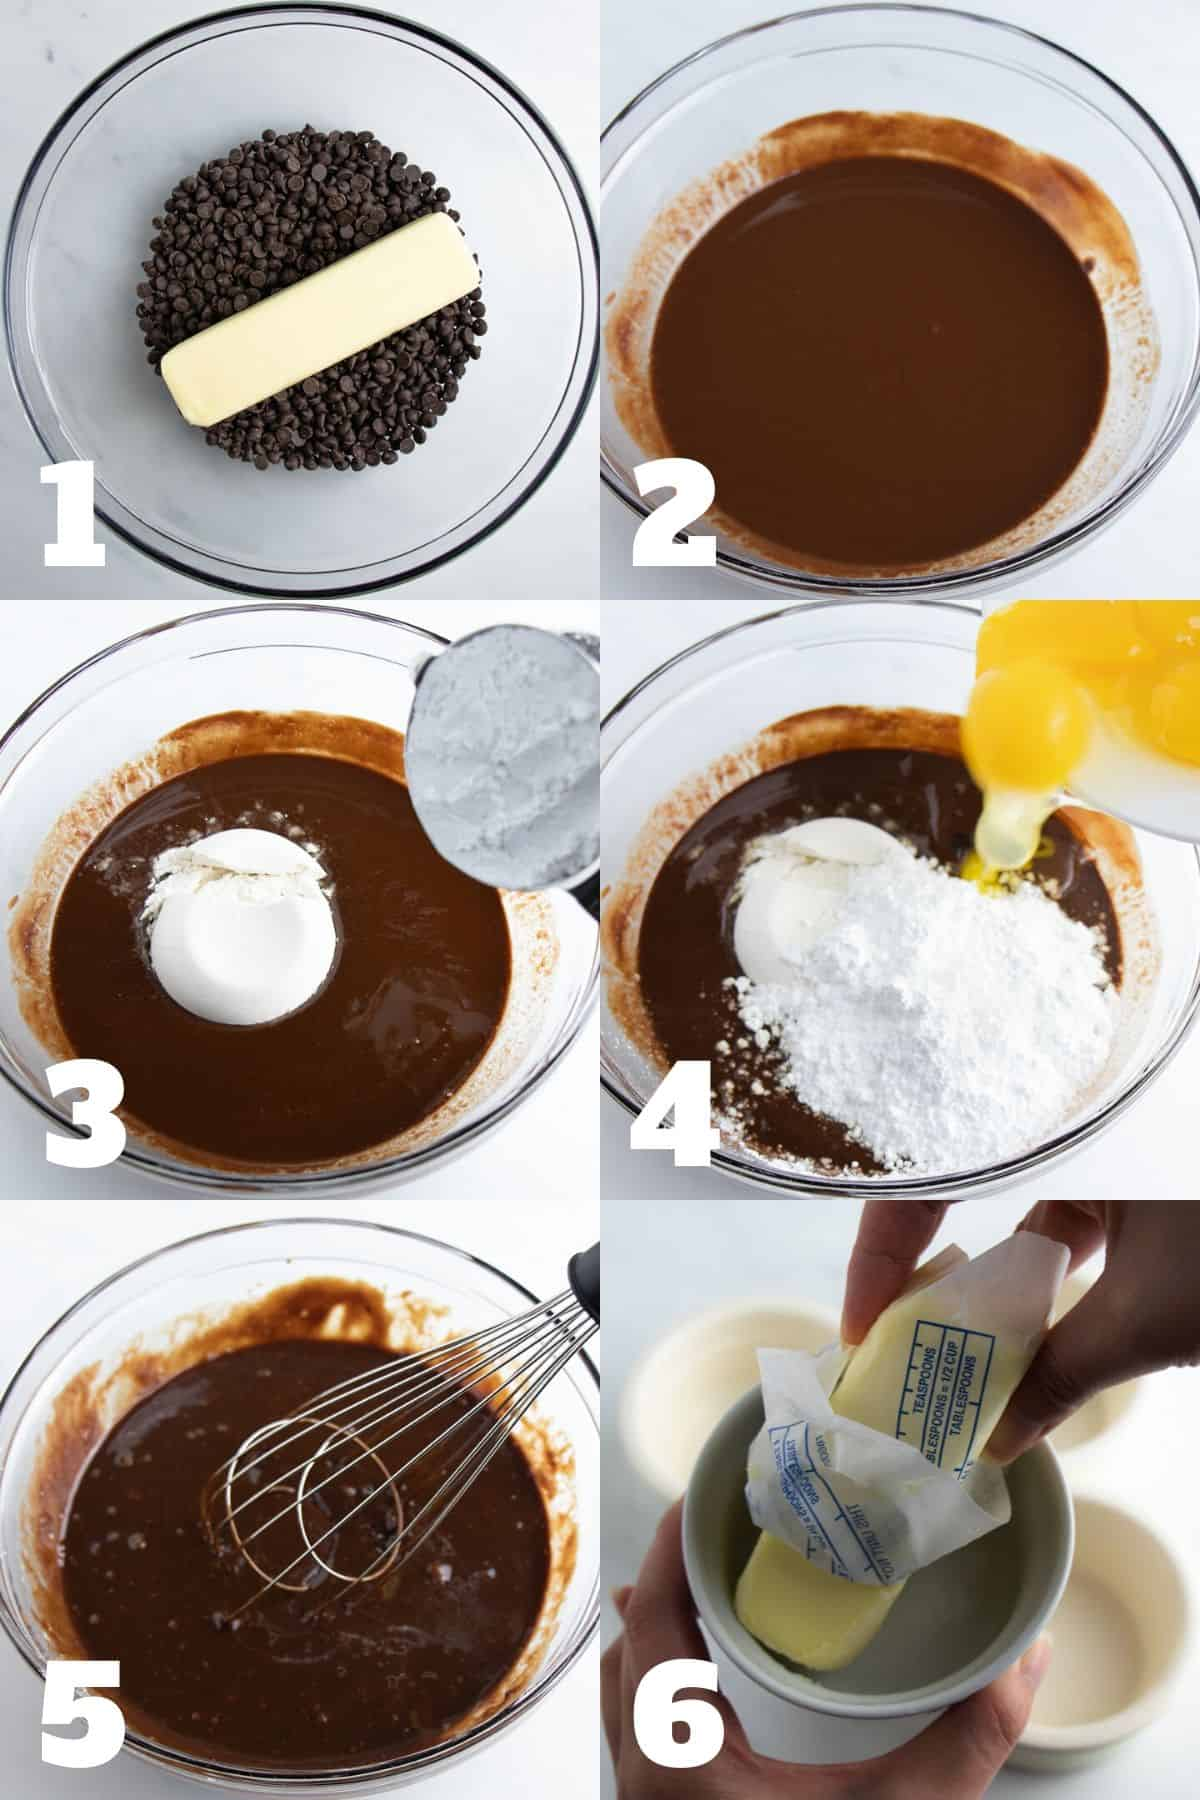 Steps to make chocolate lava cake: butter and chocolate chips melted, add flour, confectioner's sugar, eggs, and whisk.